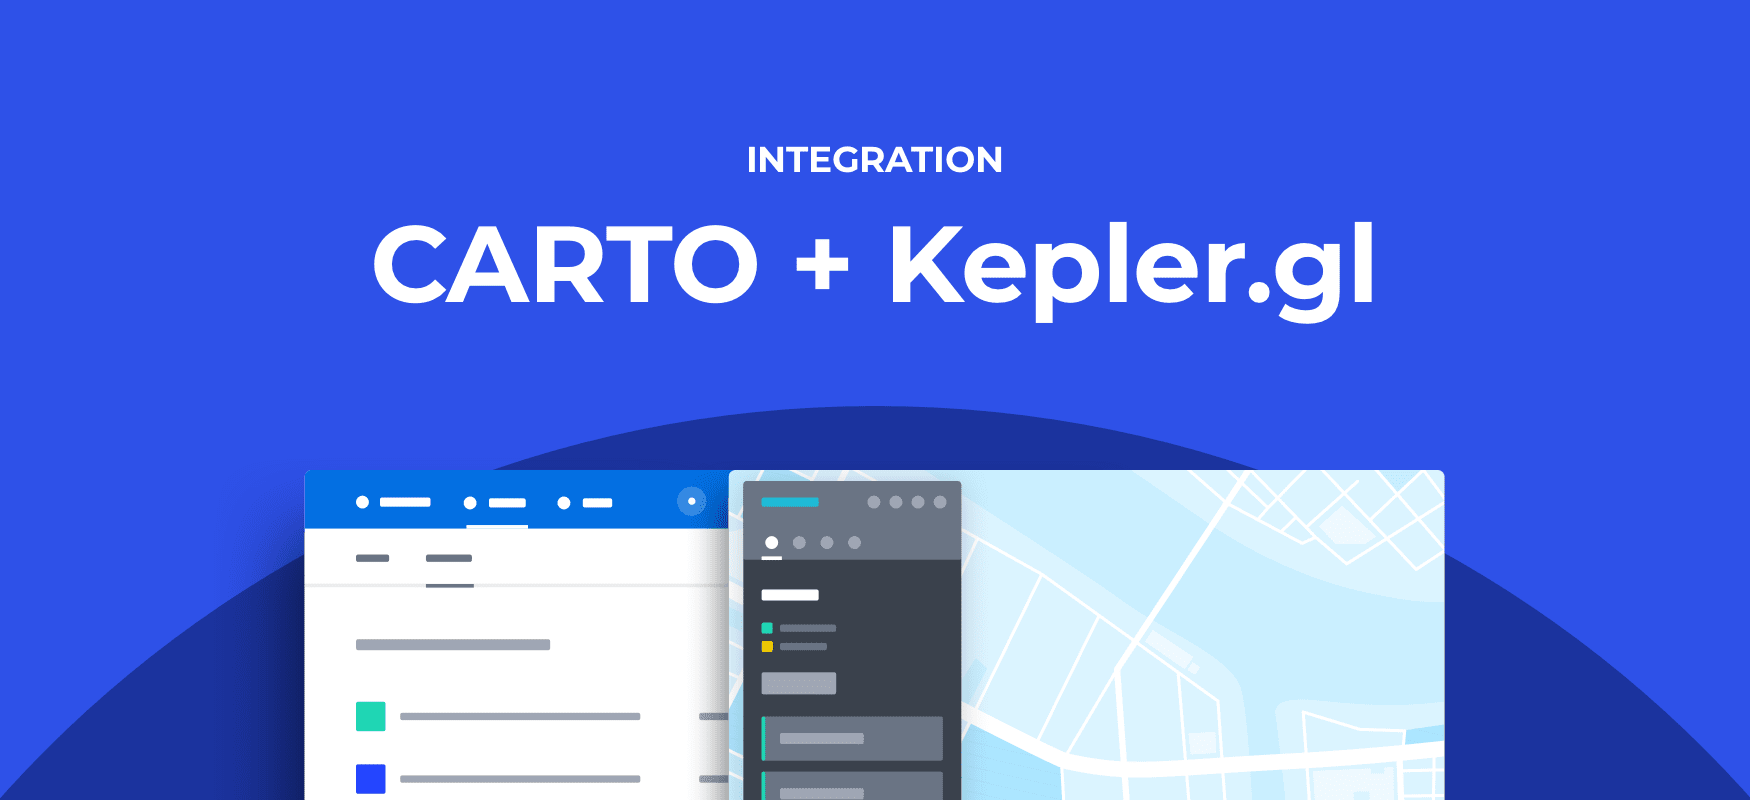 CARTO + Kepler.gl: Two Tools, One Workflow